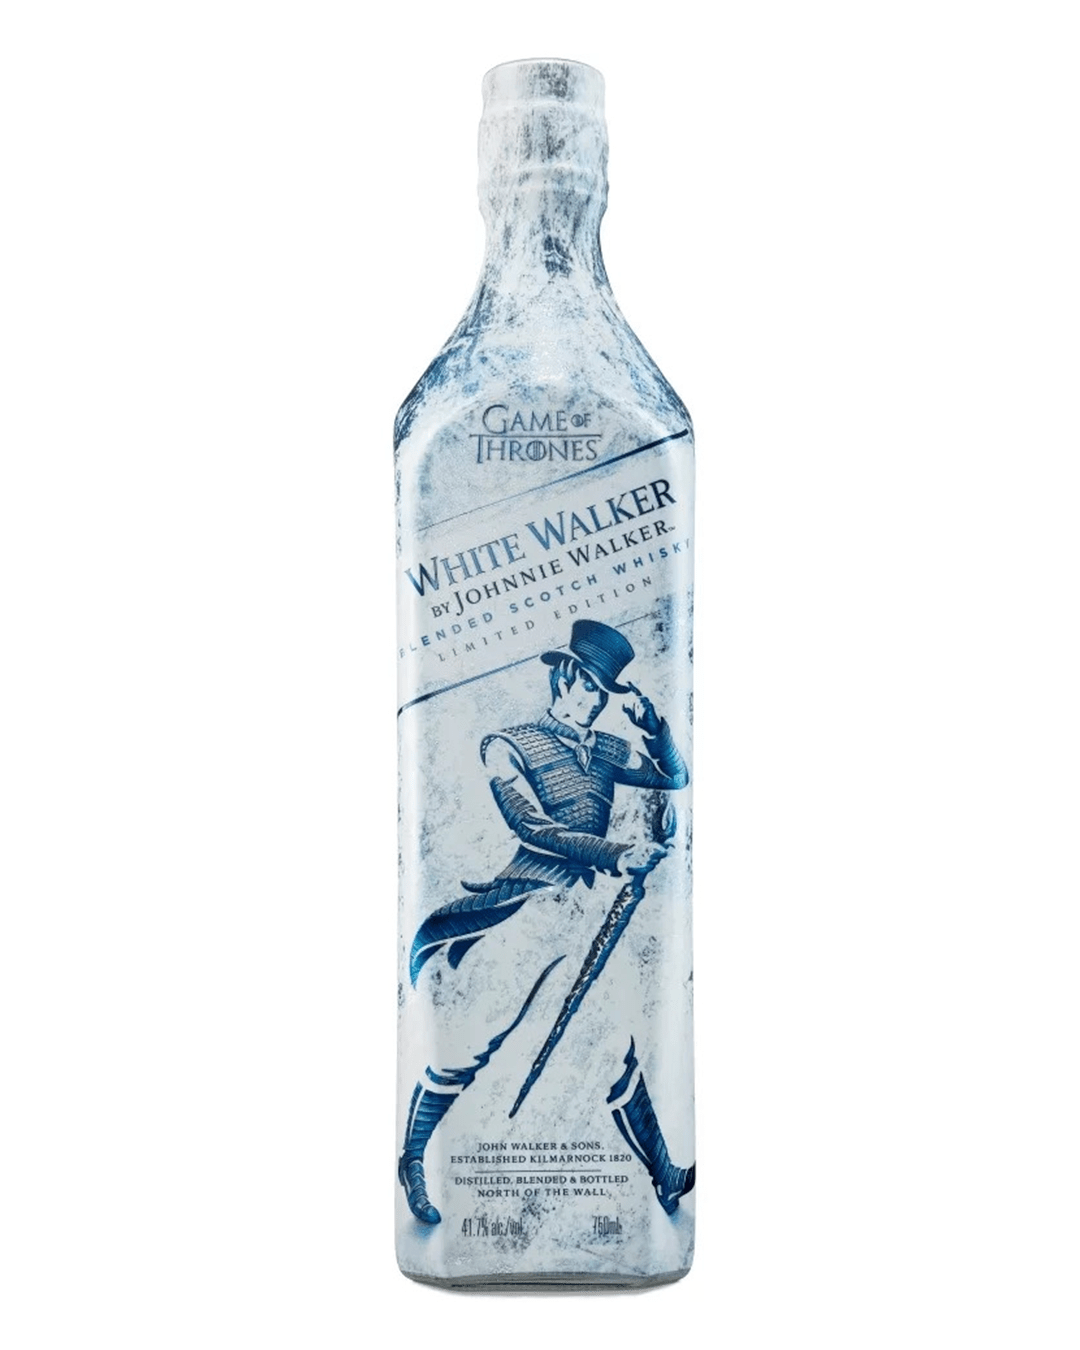 Shop Johnnie Walker White Walker Whisky, 70 cl at The Bottle Club